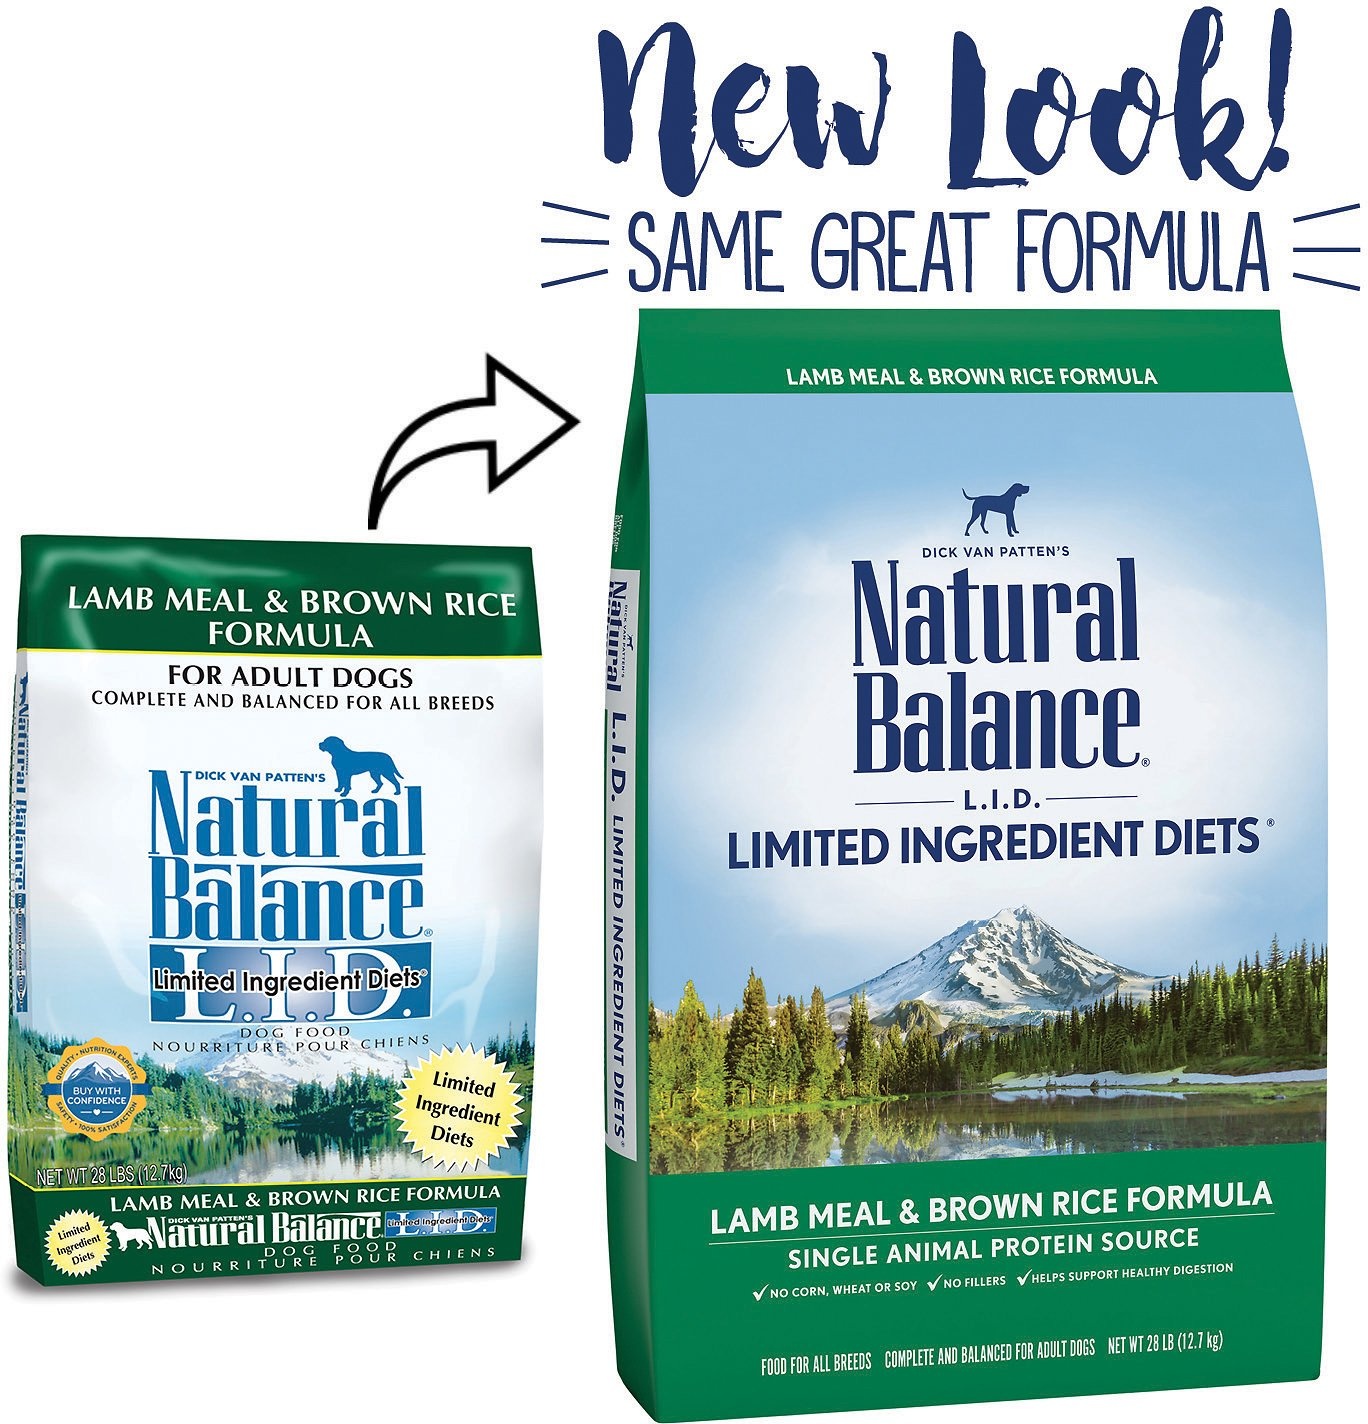 Natural Balance Limited Ingredient Cat Food Ingredients